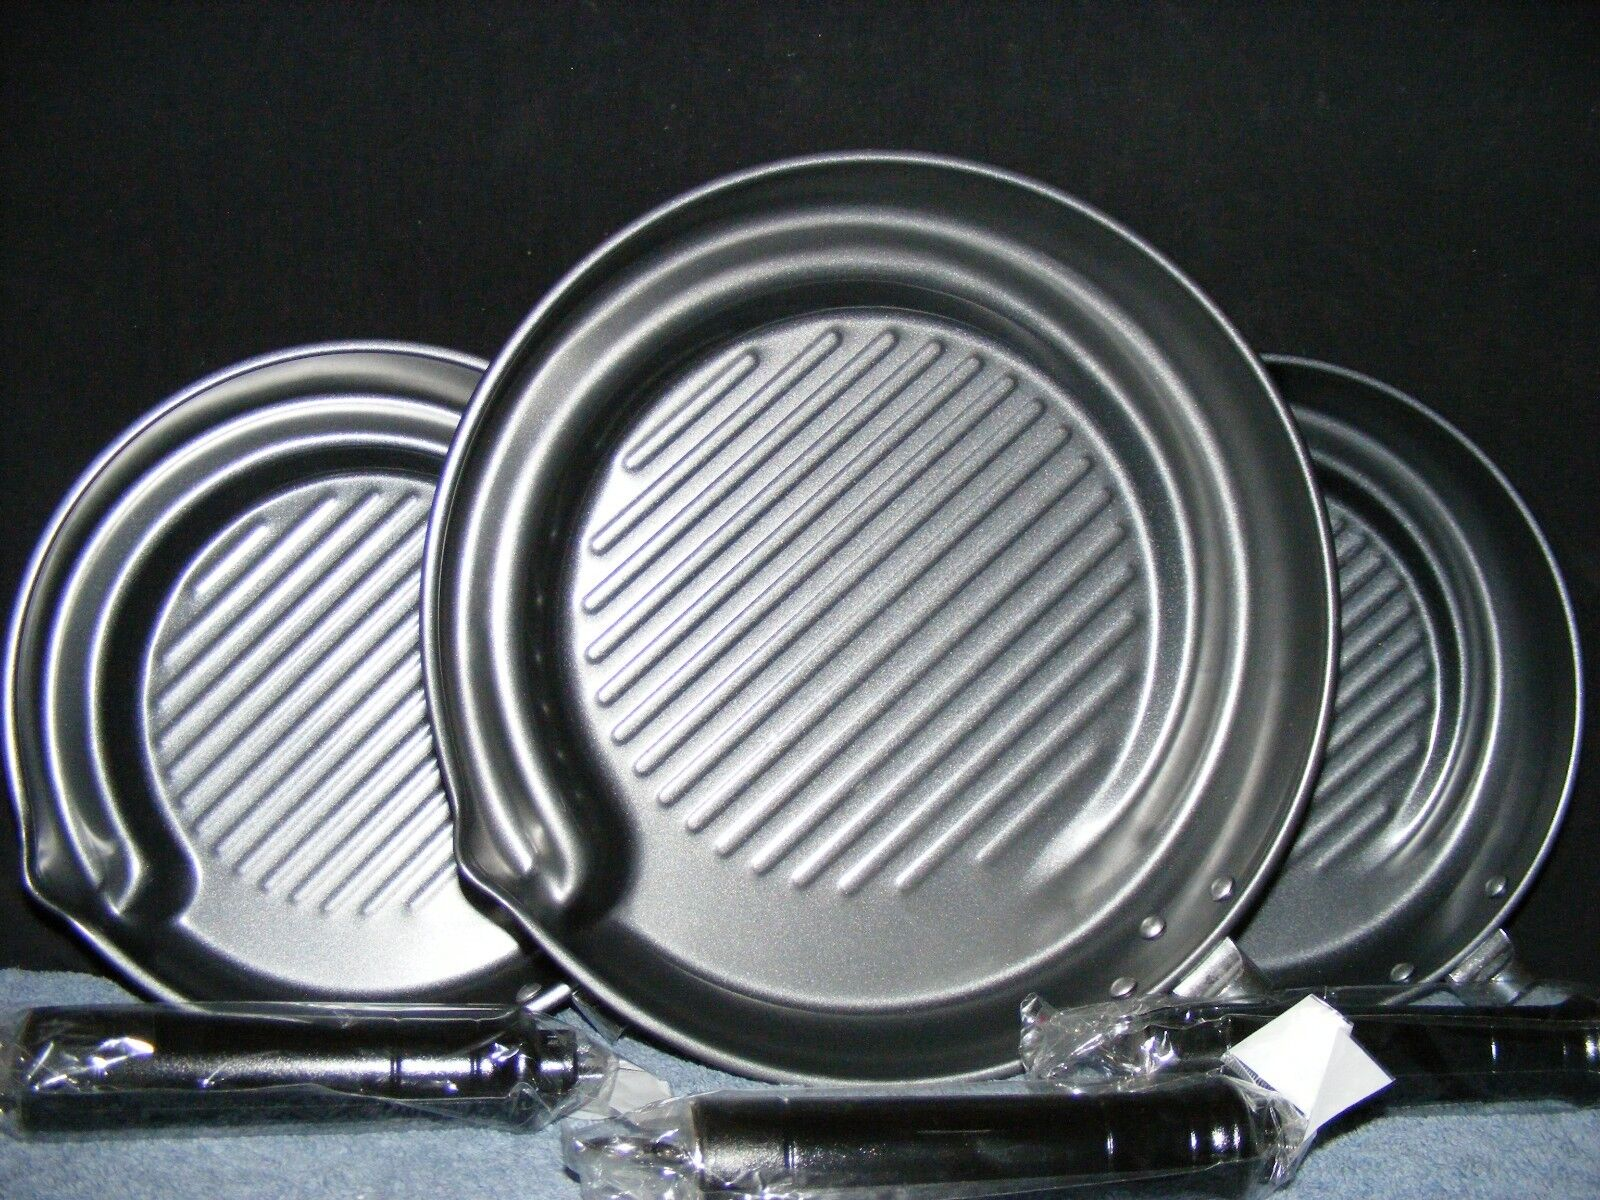 Set of 3 Kitchenrite Ribbed Grill Pans with Removable Handle